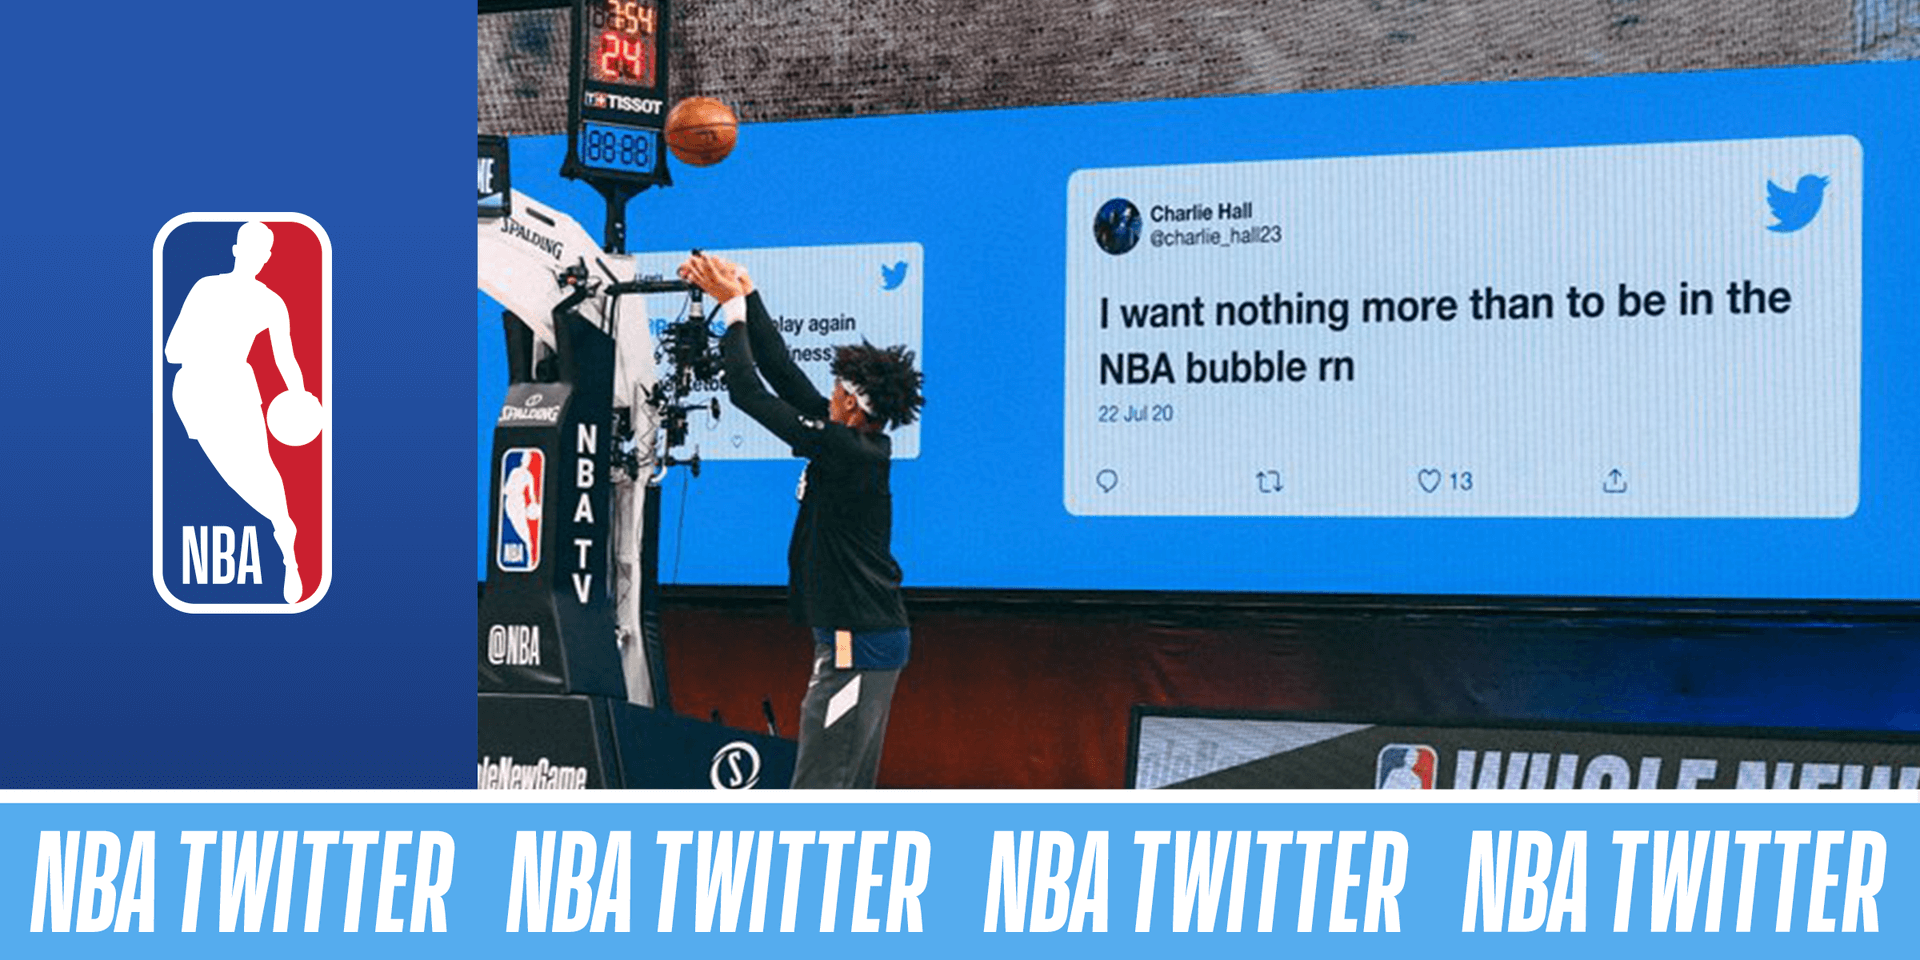 @NBA Twitter - From Orlando to Twitter